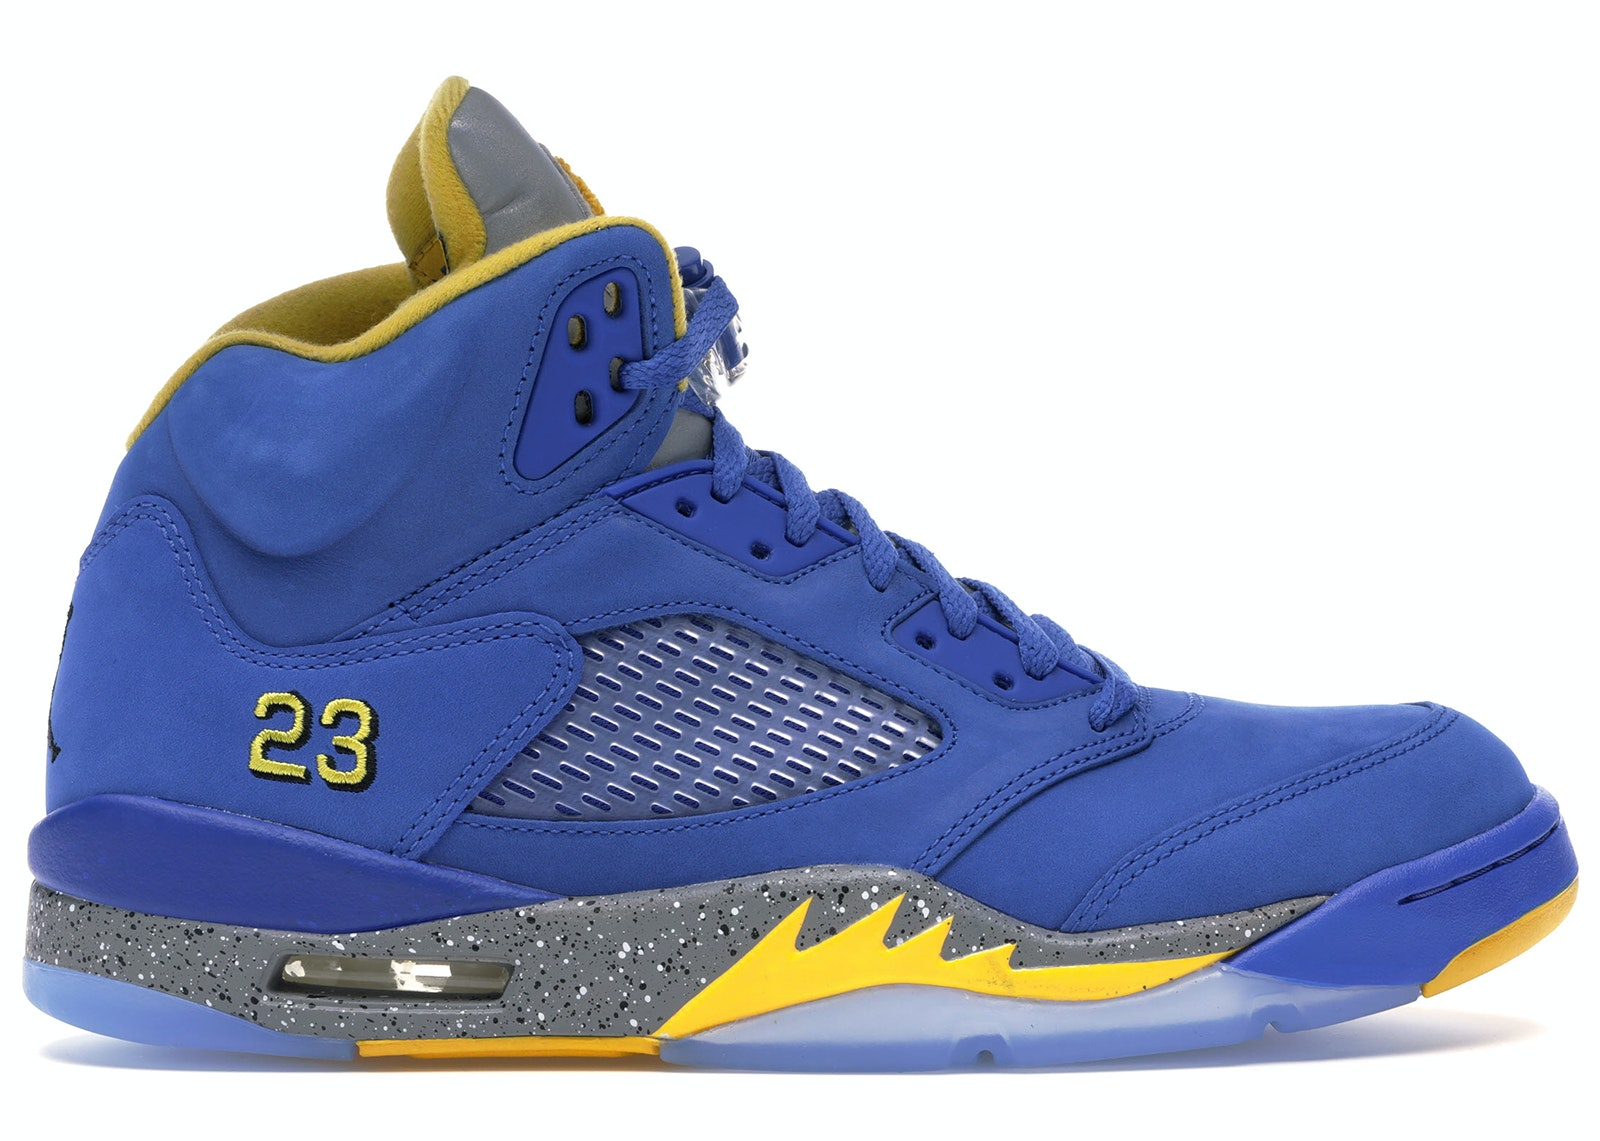 Jordan 5 Retro JSP Laney Varsity Royal